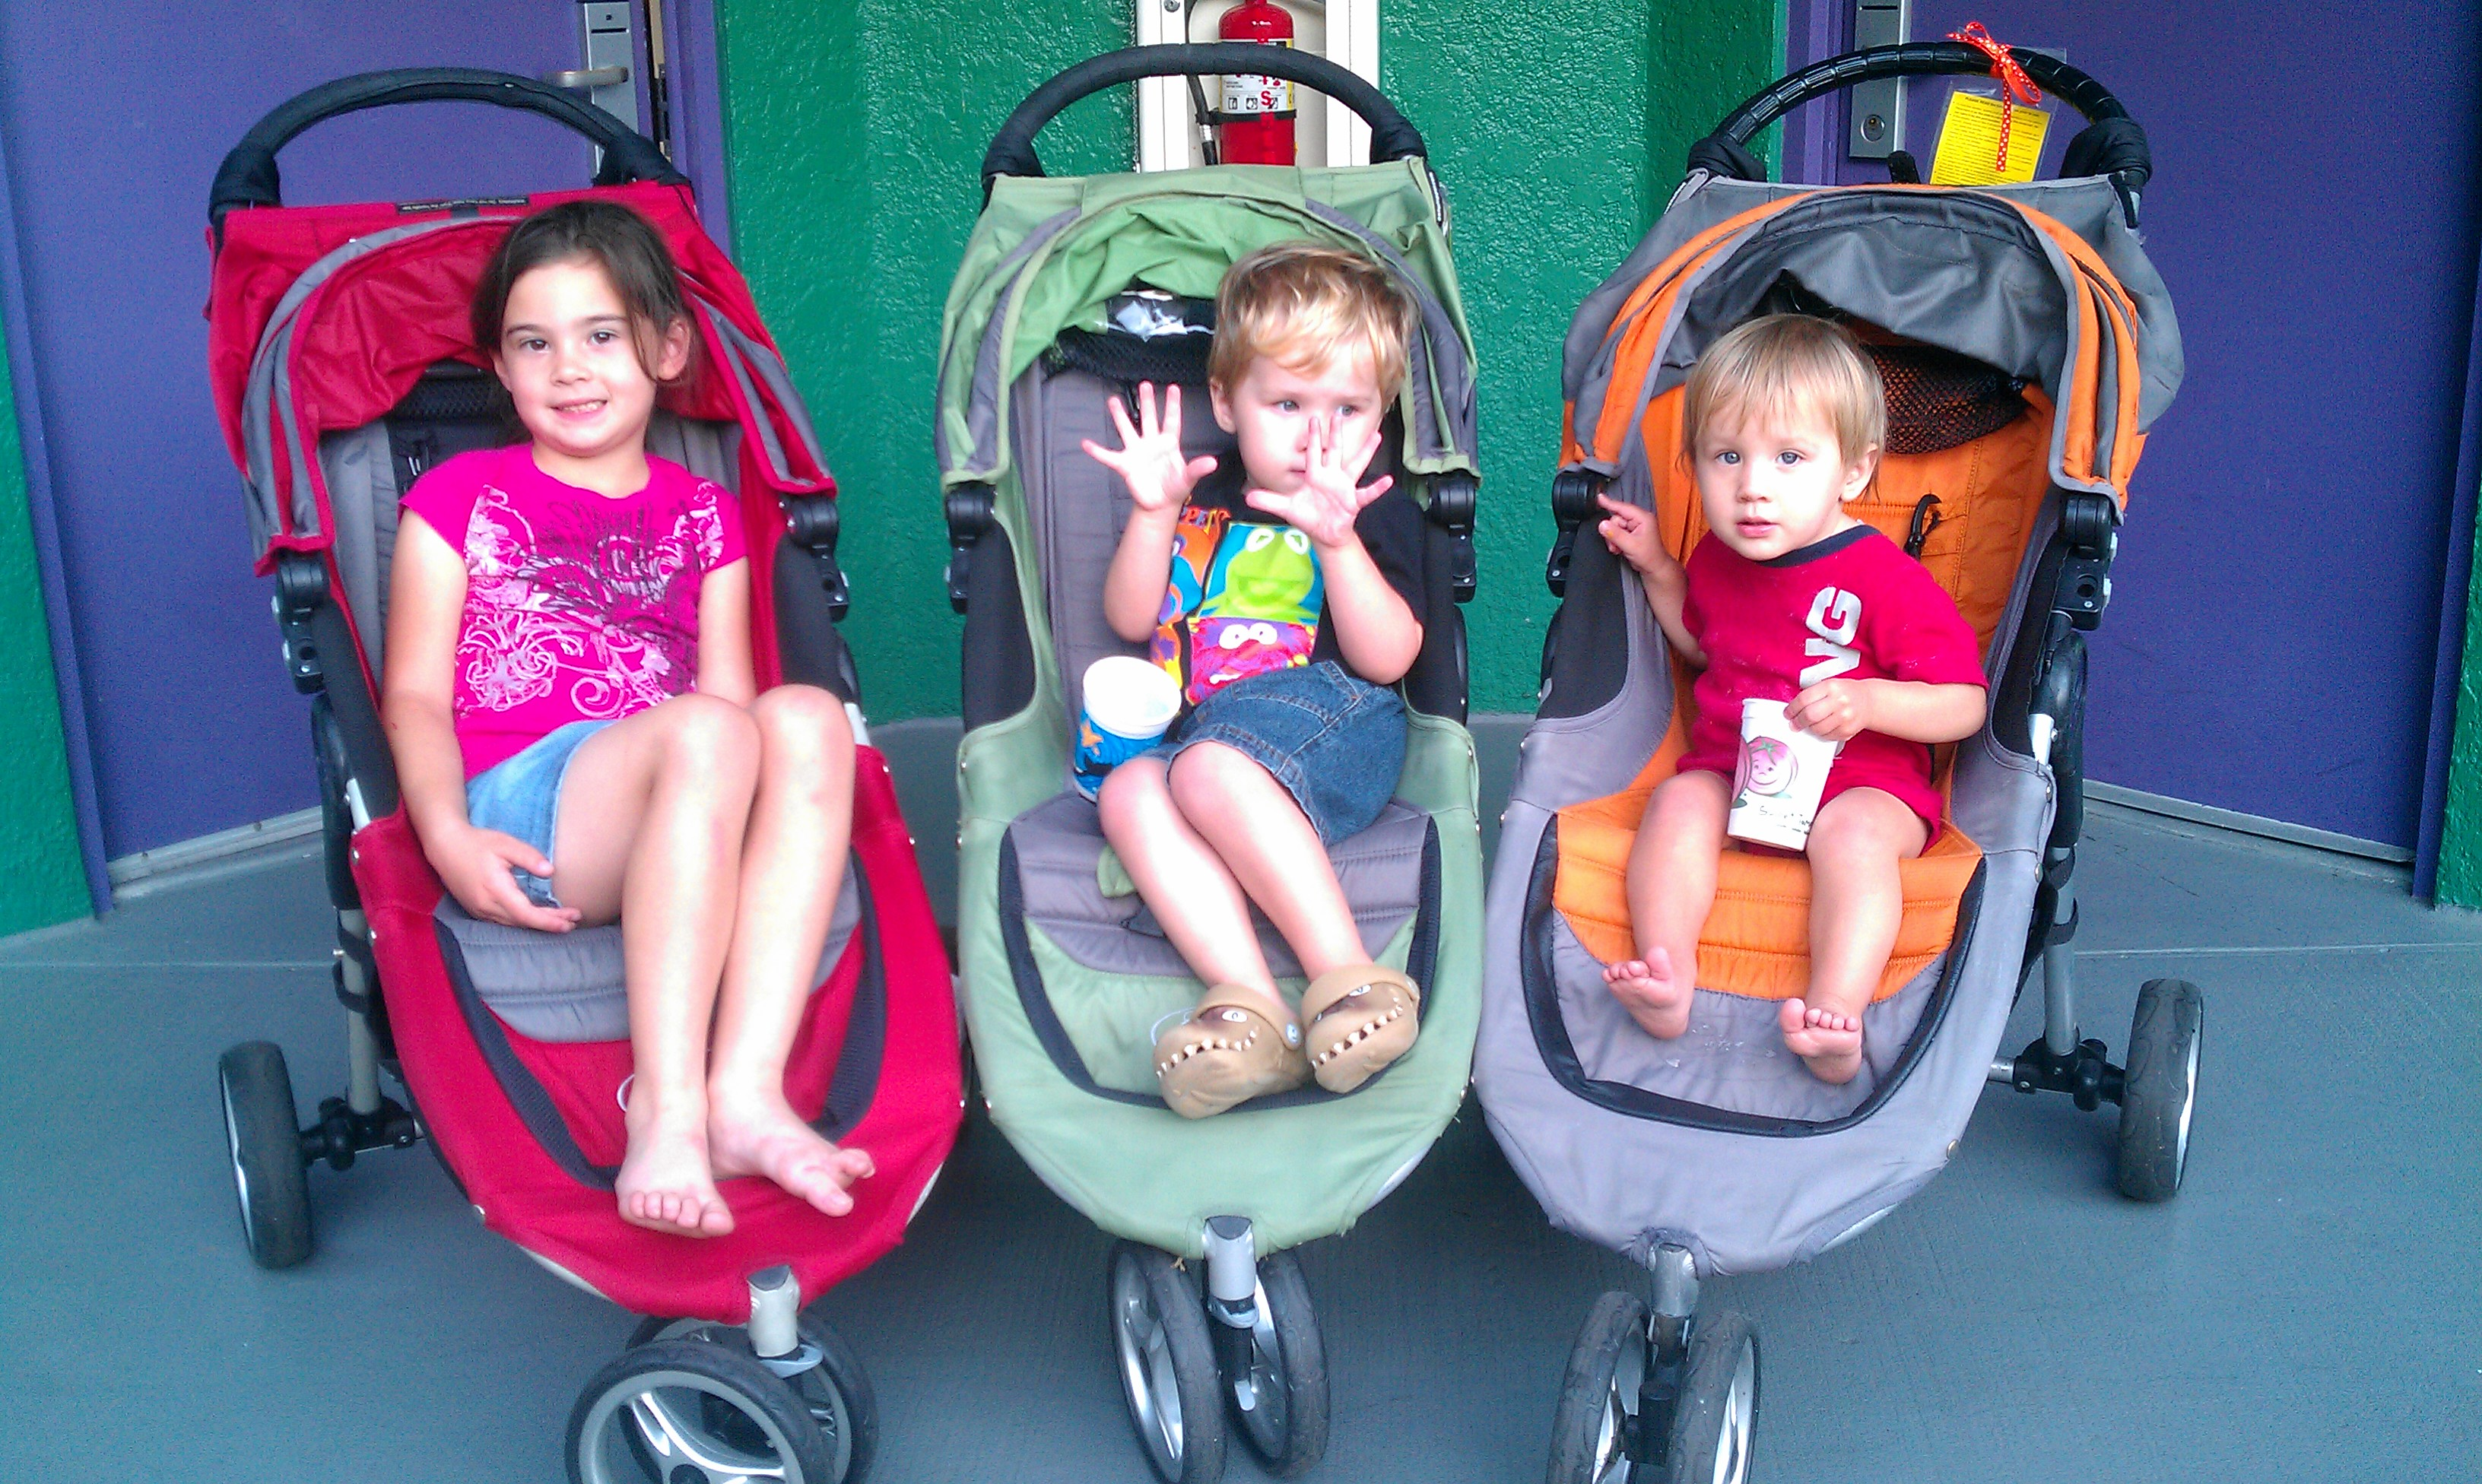 Stroller Rental Companies Near Walt Disney World ...